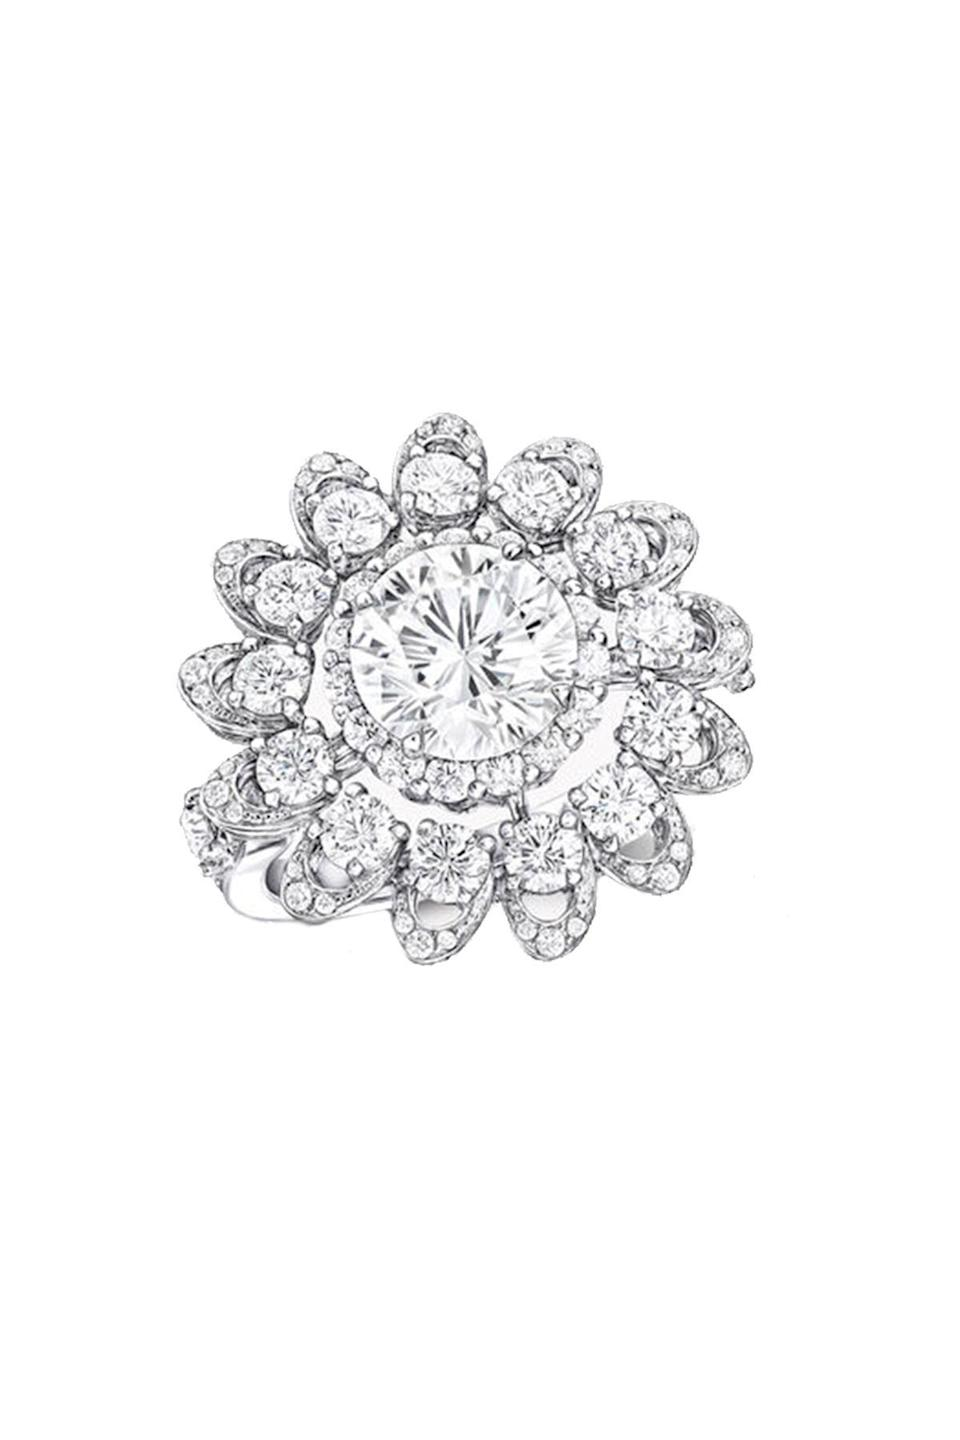 """<p><strong>Graff</strong></p><p>graff.com</p><p><a href=""""https://www.graff.com/us-en/jewellery-collections/view-by-collection/tribal/graff-gateway/graff-gateway-classic-pave-diamond-ring/RGR817_RGR817.html"""" rel=""""nofollow noopener"""" target=""""_blank"""" data-ylk=""""slk:Shop Now"""" class=""""link rapid-noclick-resp"""">Shop Now</a></p><p>Just because she wants a diamond ring doesn't mean she wants the same diamond ring as everyone else. This Graff piece is stunning with a two carat center diamond in a sculptural setting. </p>"""